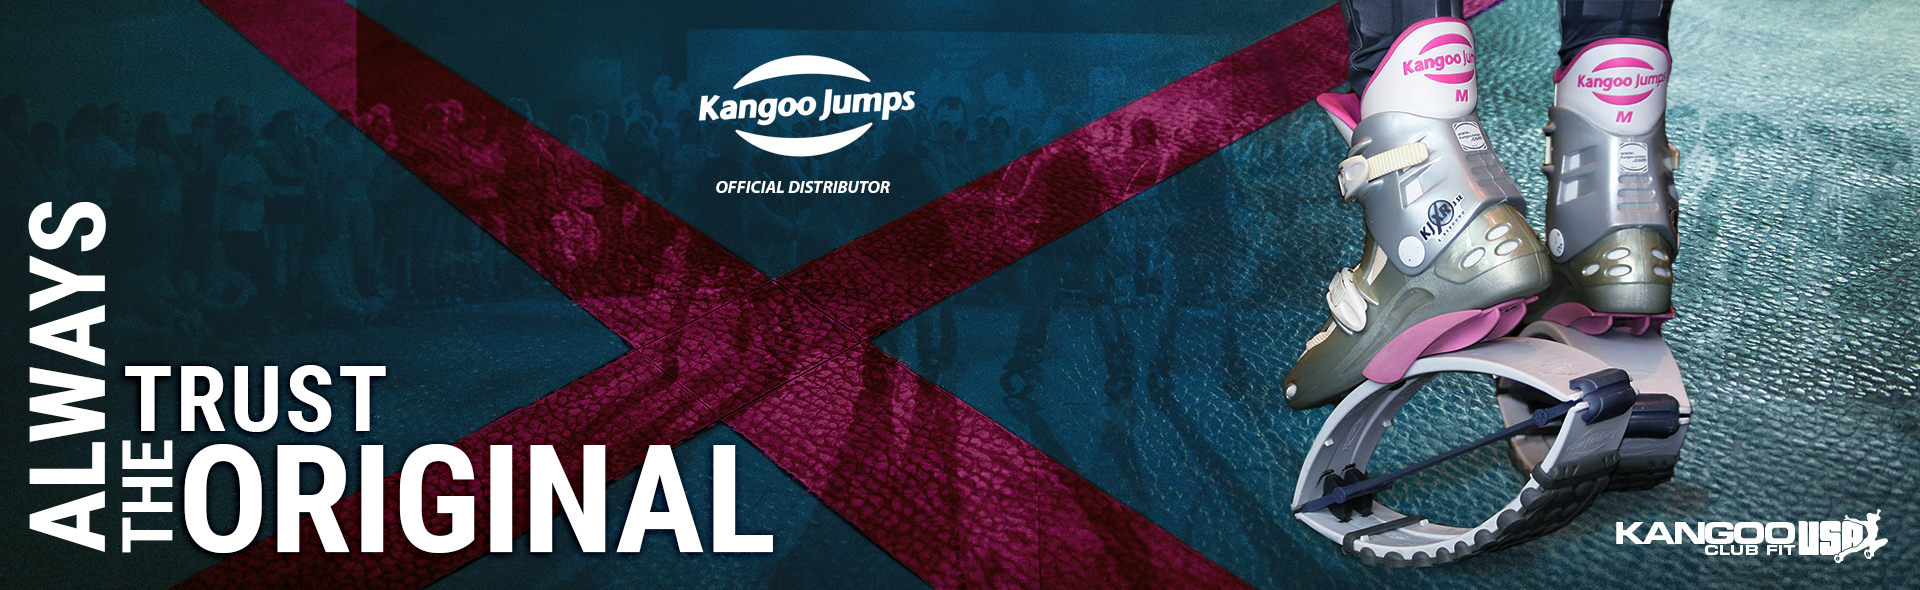 Trust the Original - Shop from Official Kangoo Jumps Distributor